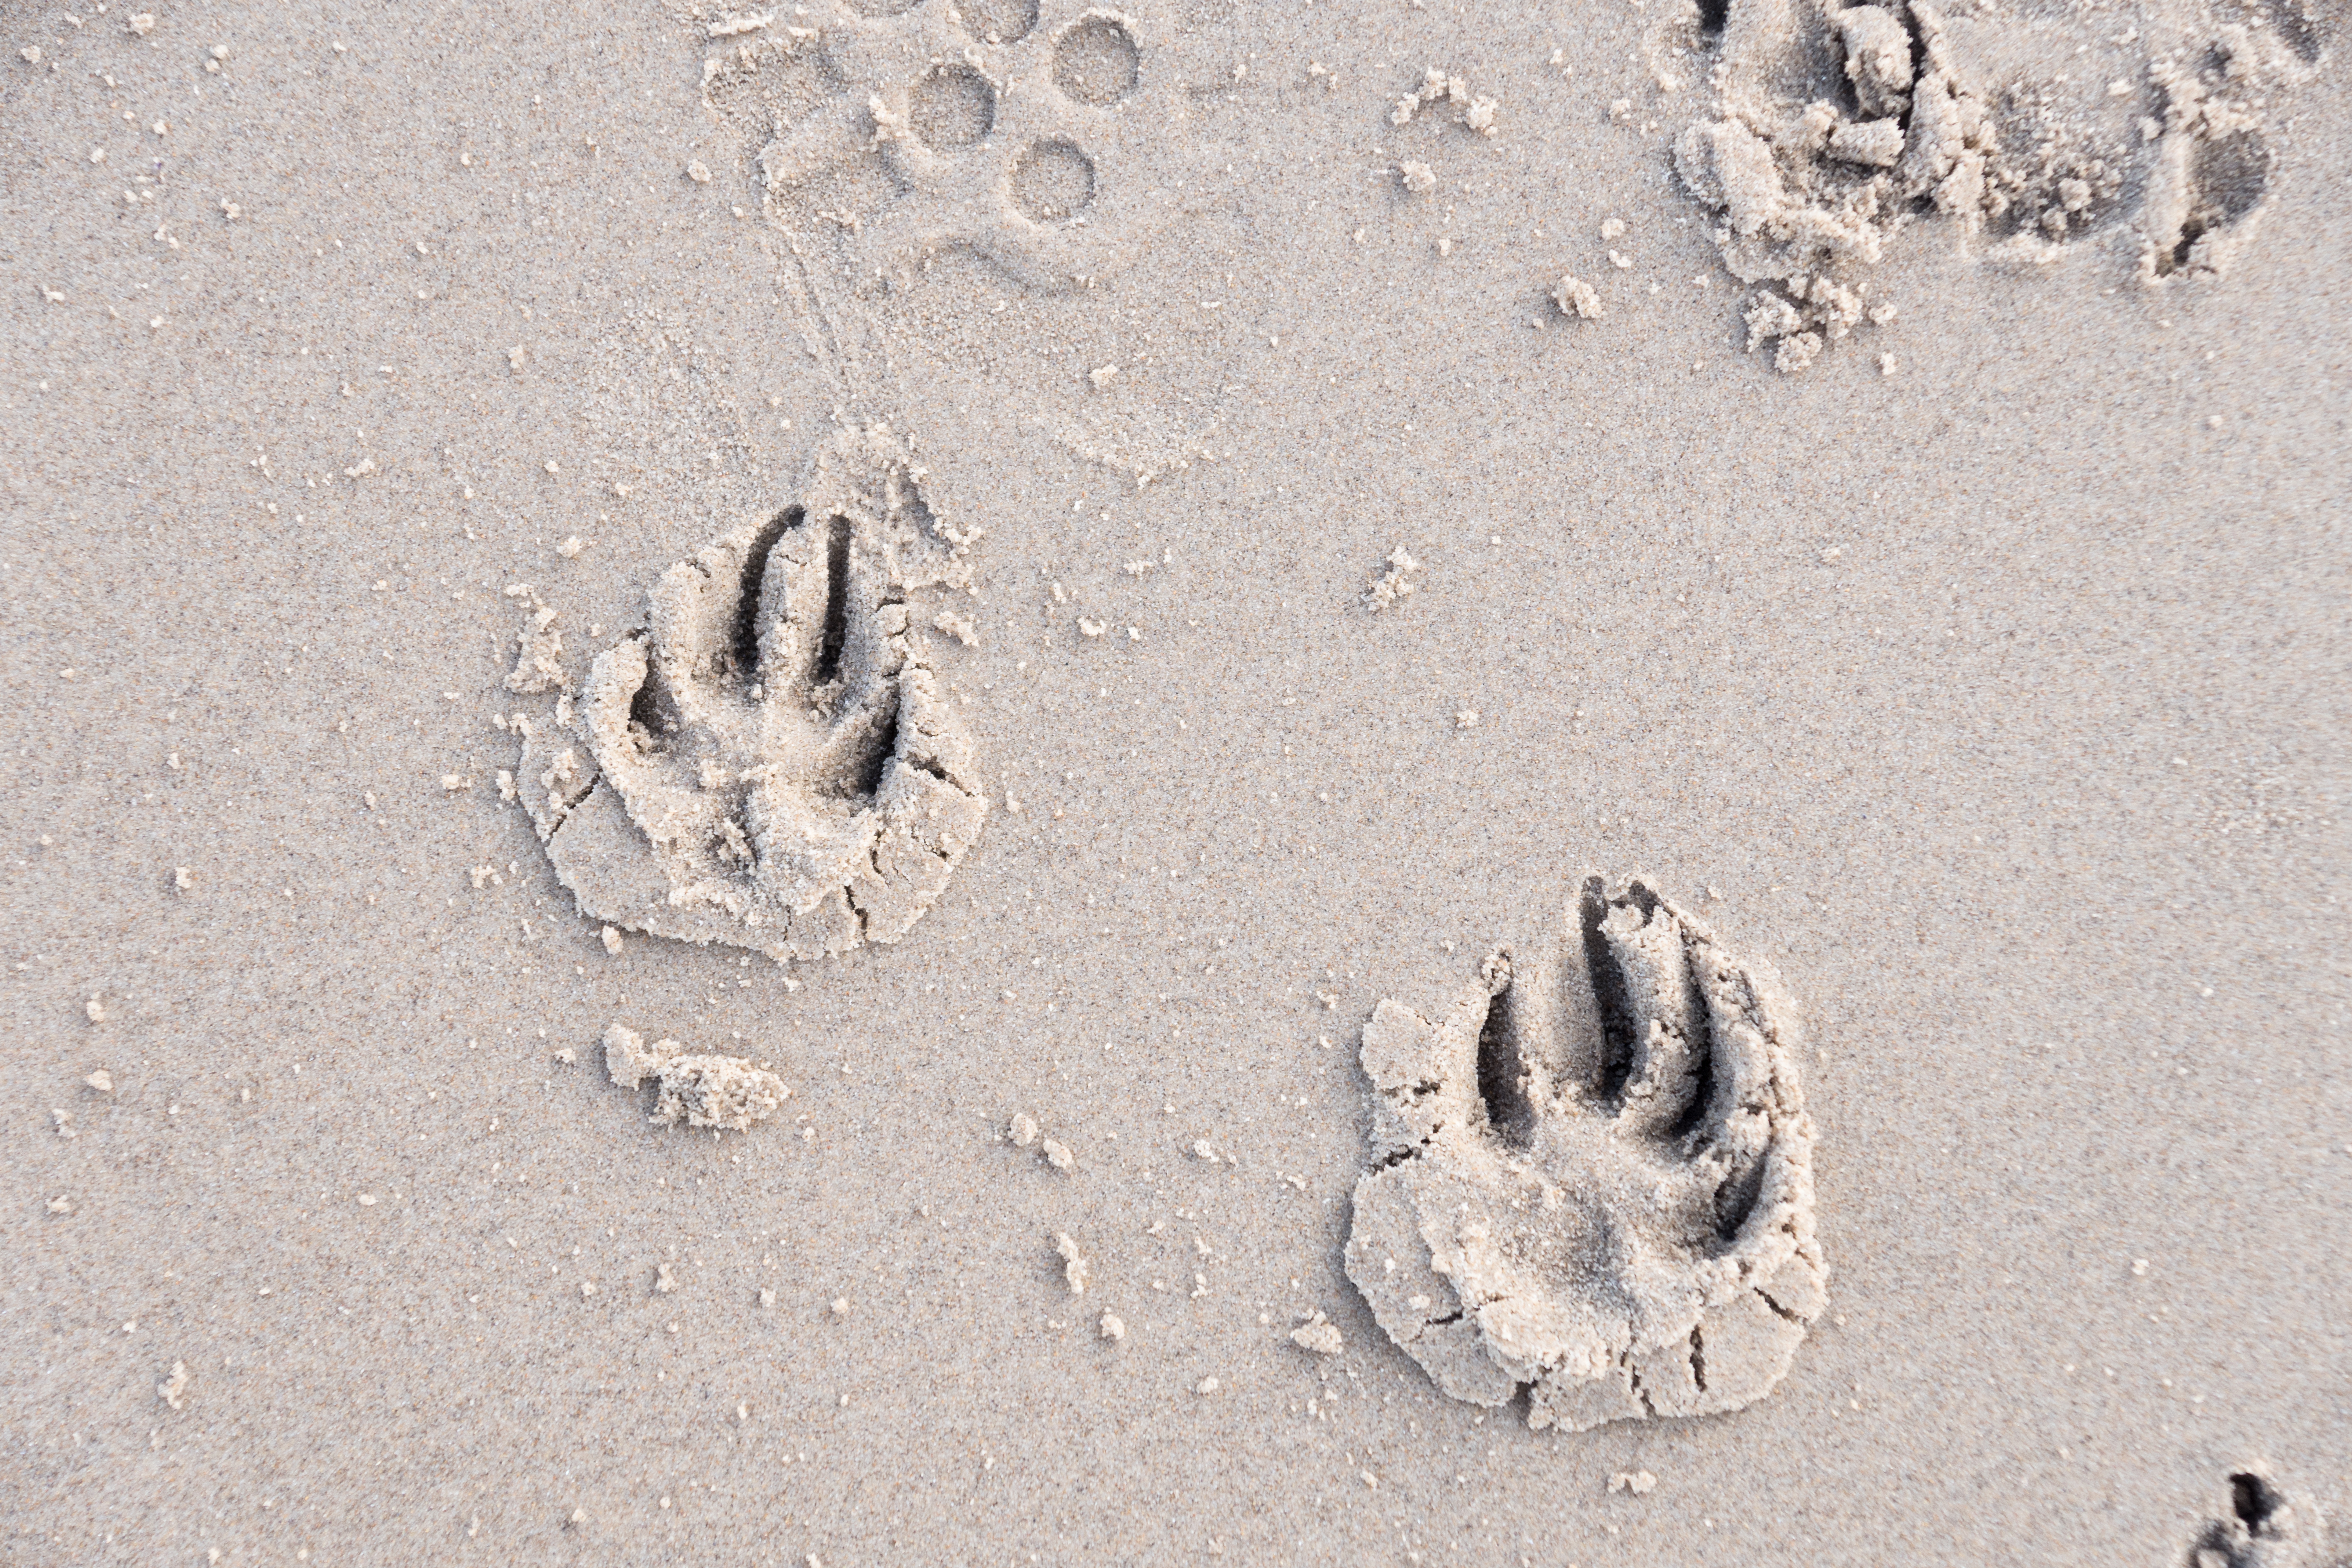 PAW MARKS IN THE SAND